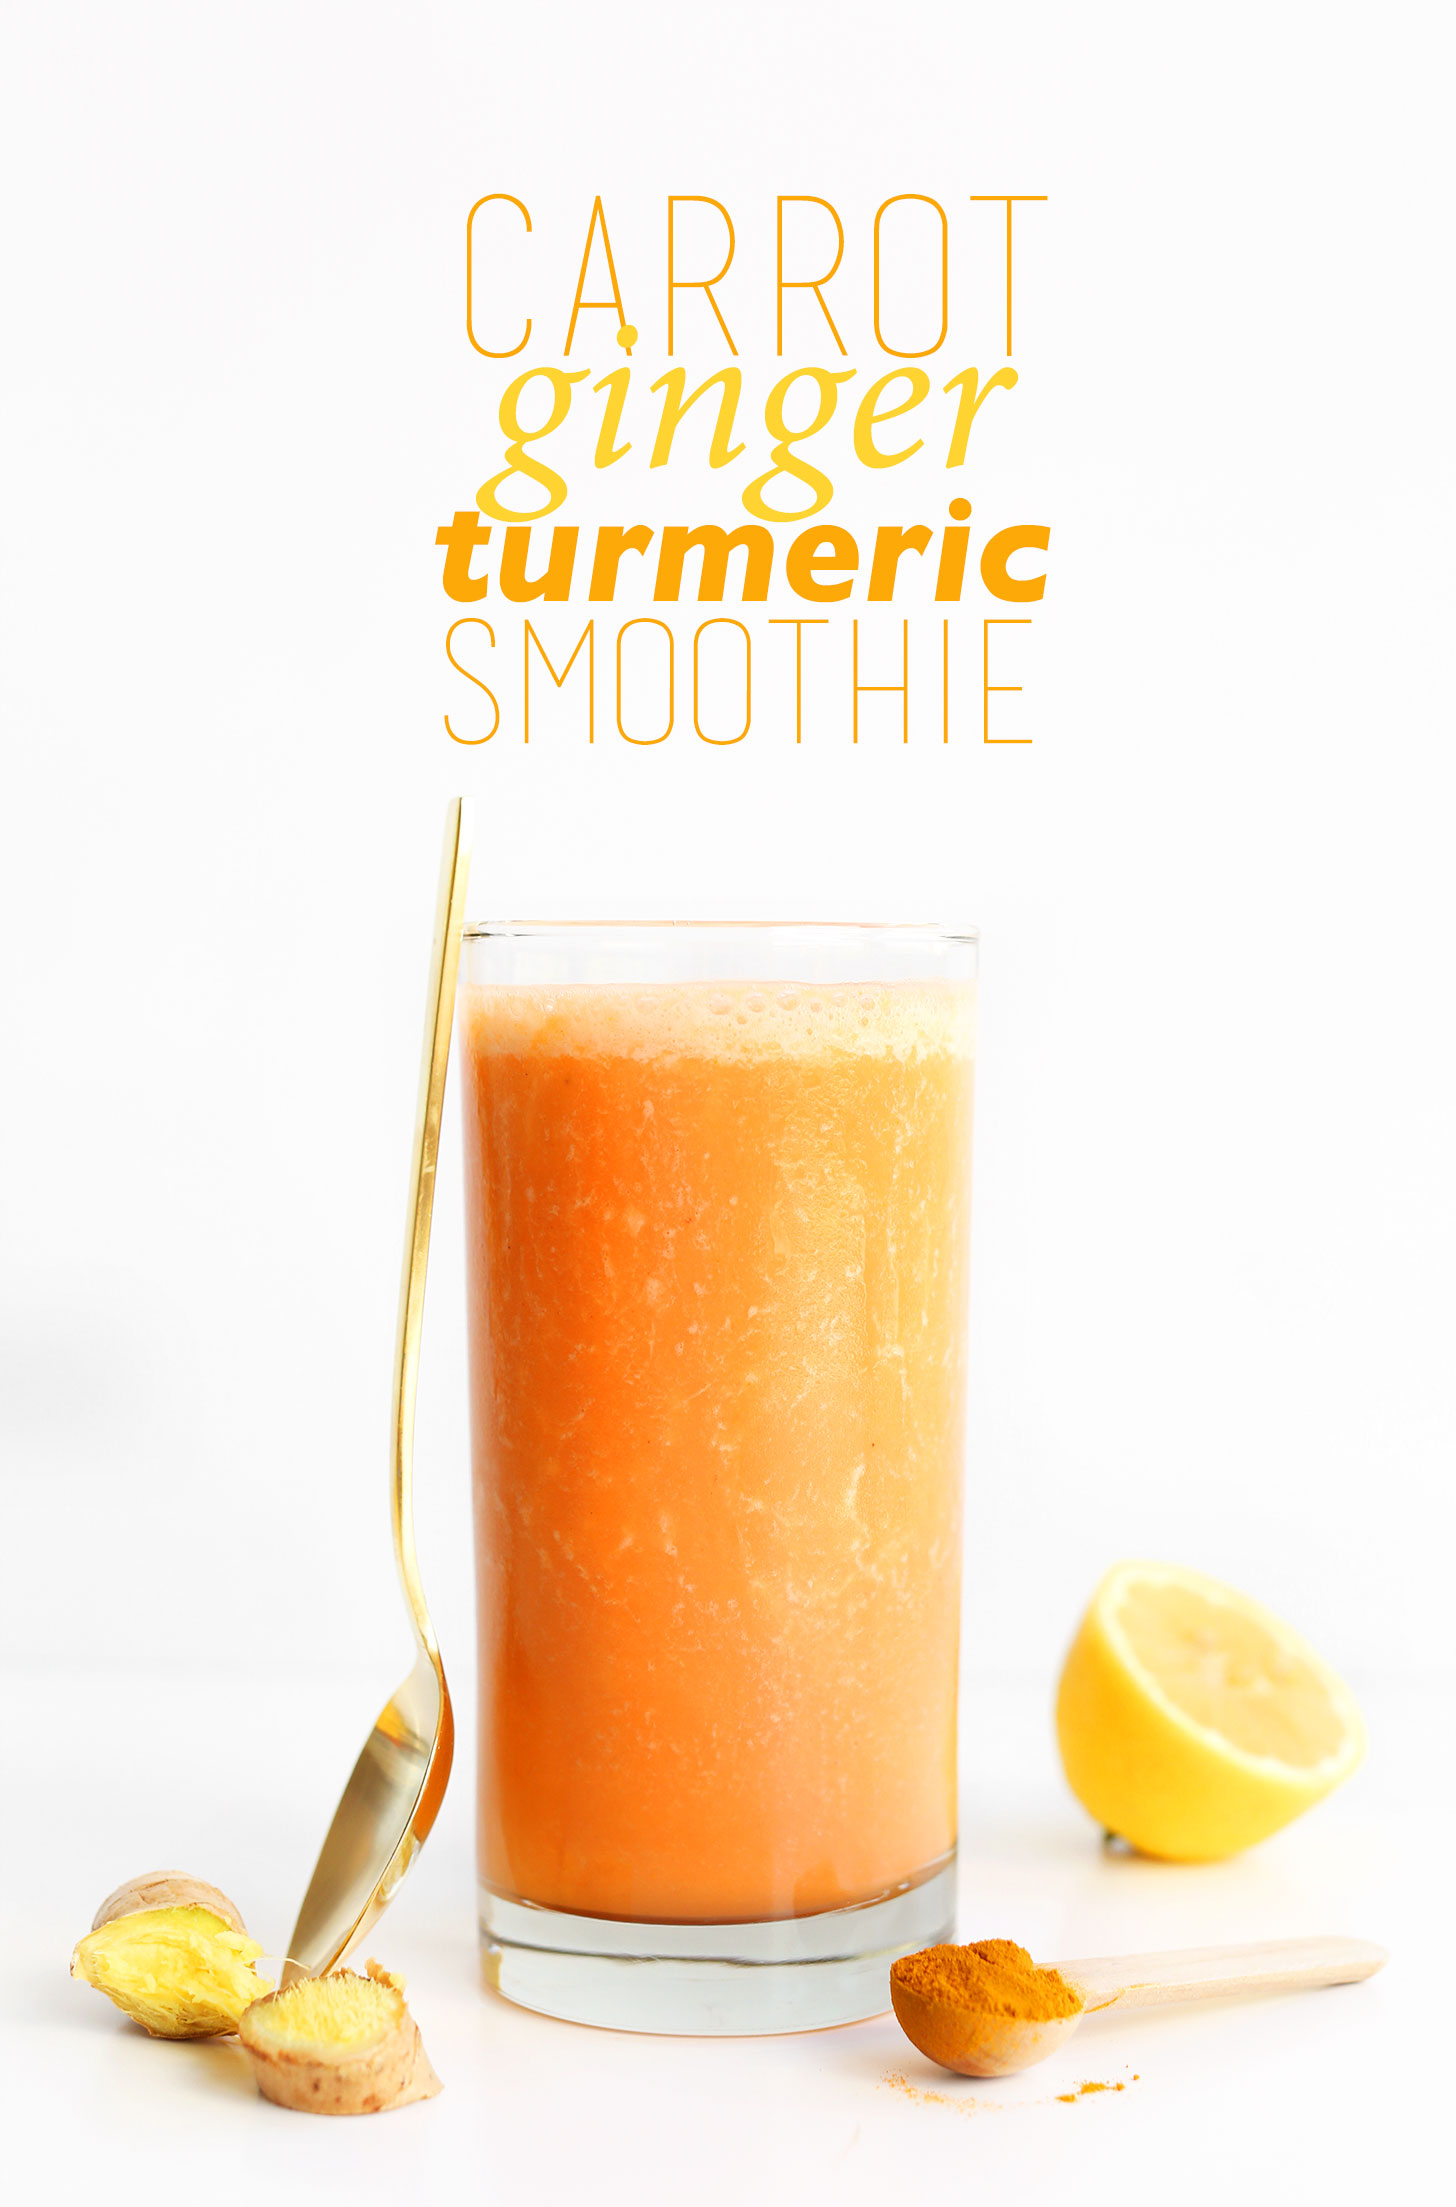 Glass of our immune-boosting vegan Carrot Ginger Turmeric Smoothie